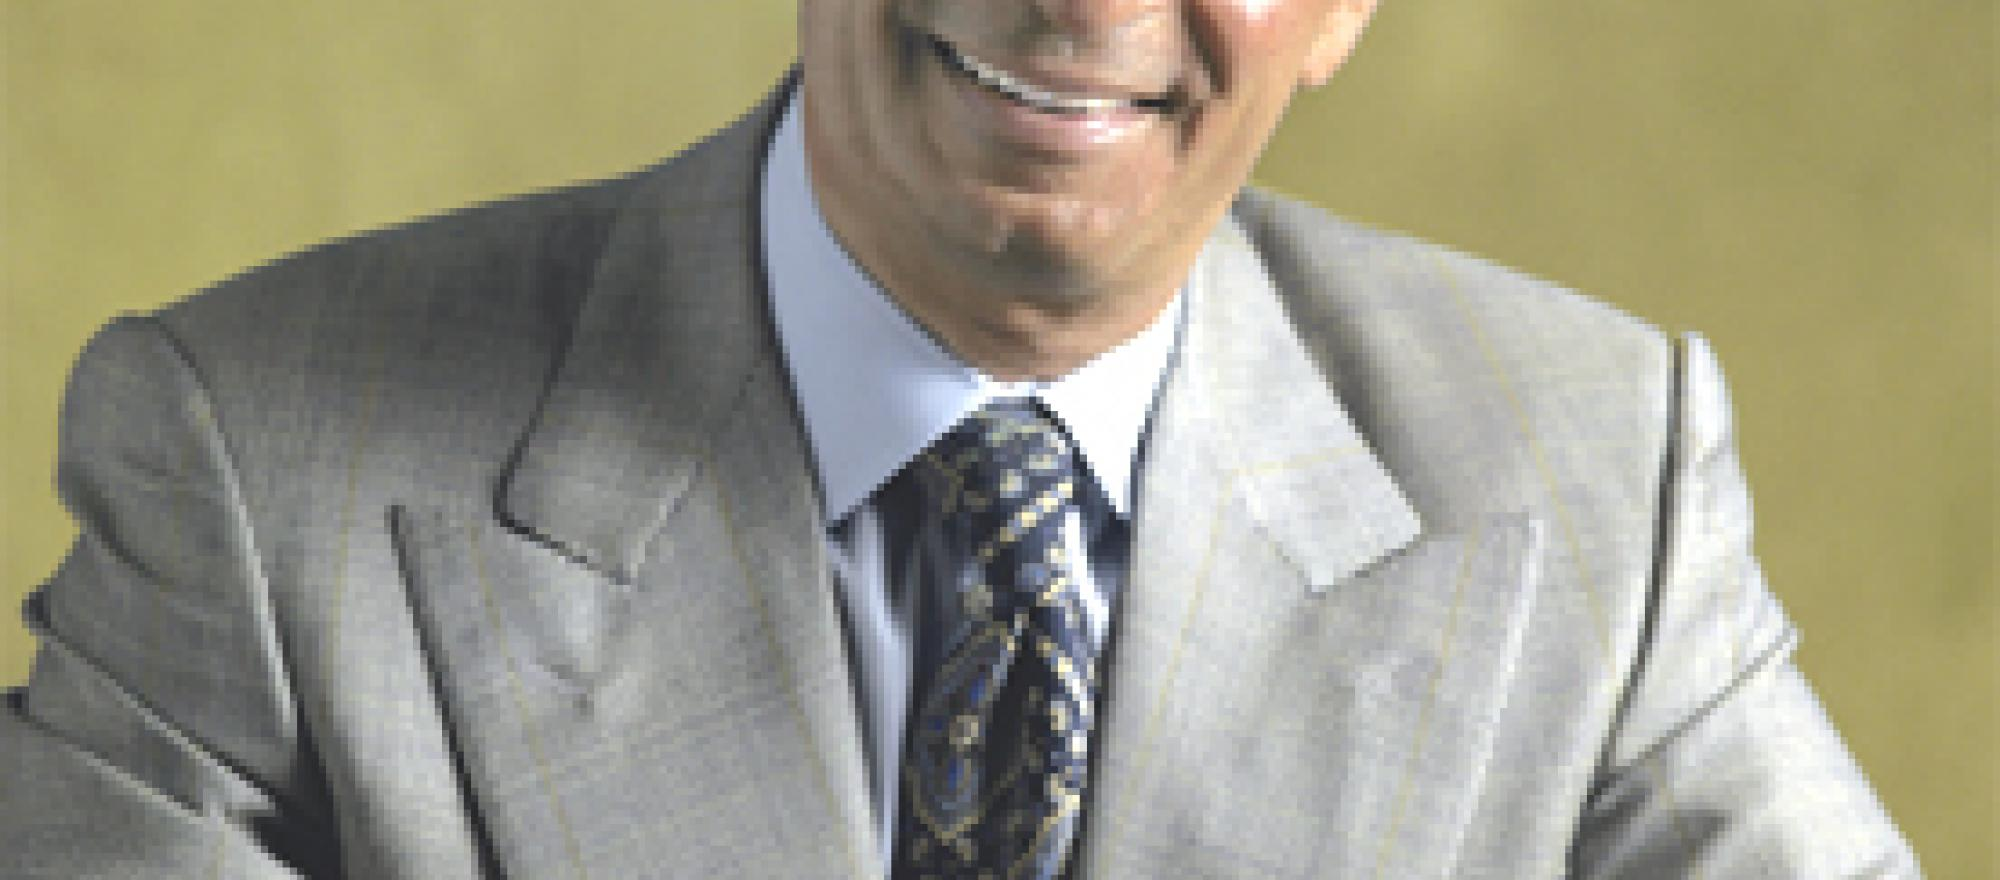 Richard Santulli wrote the rules on fractional ownership, and in the process